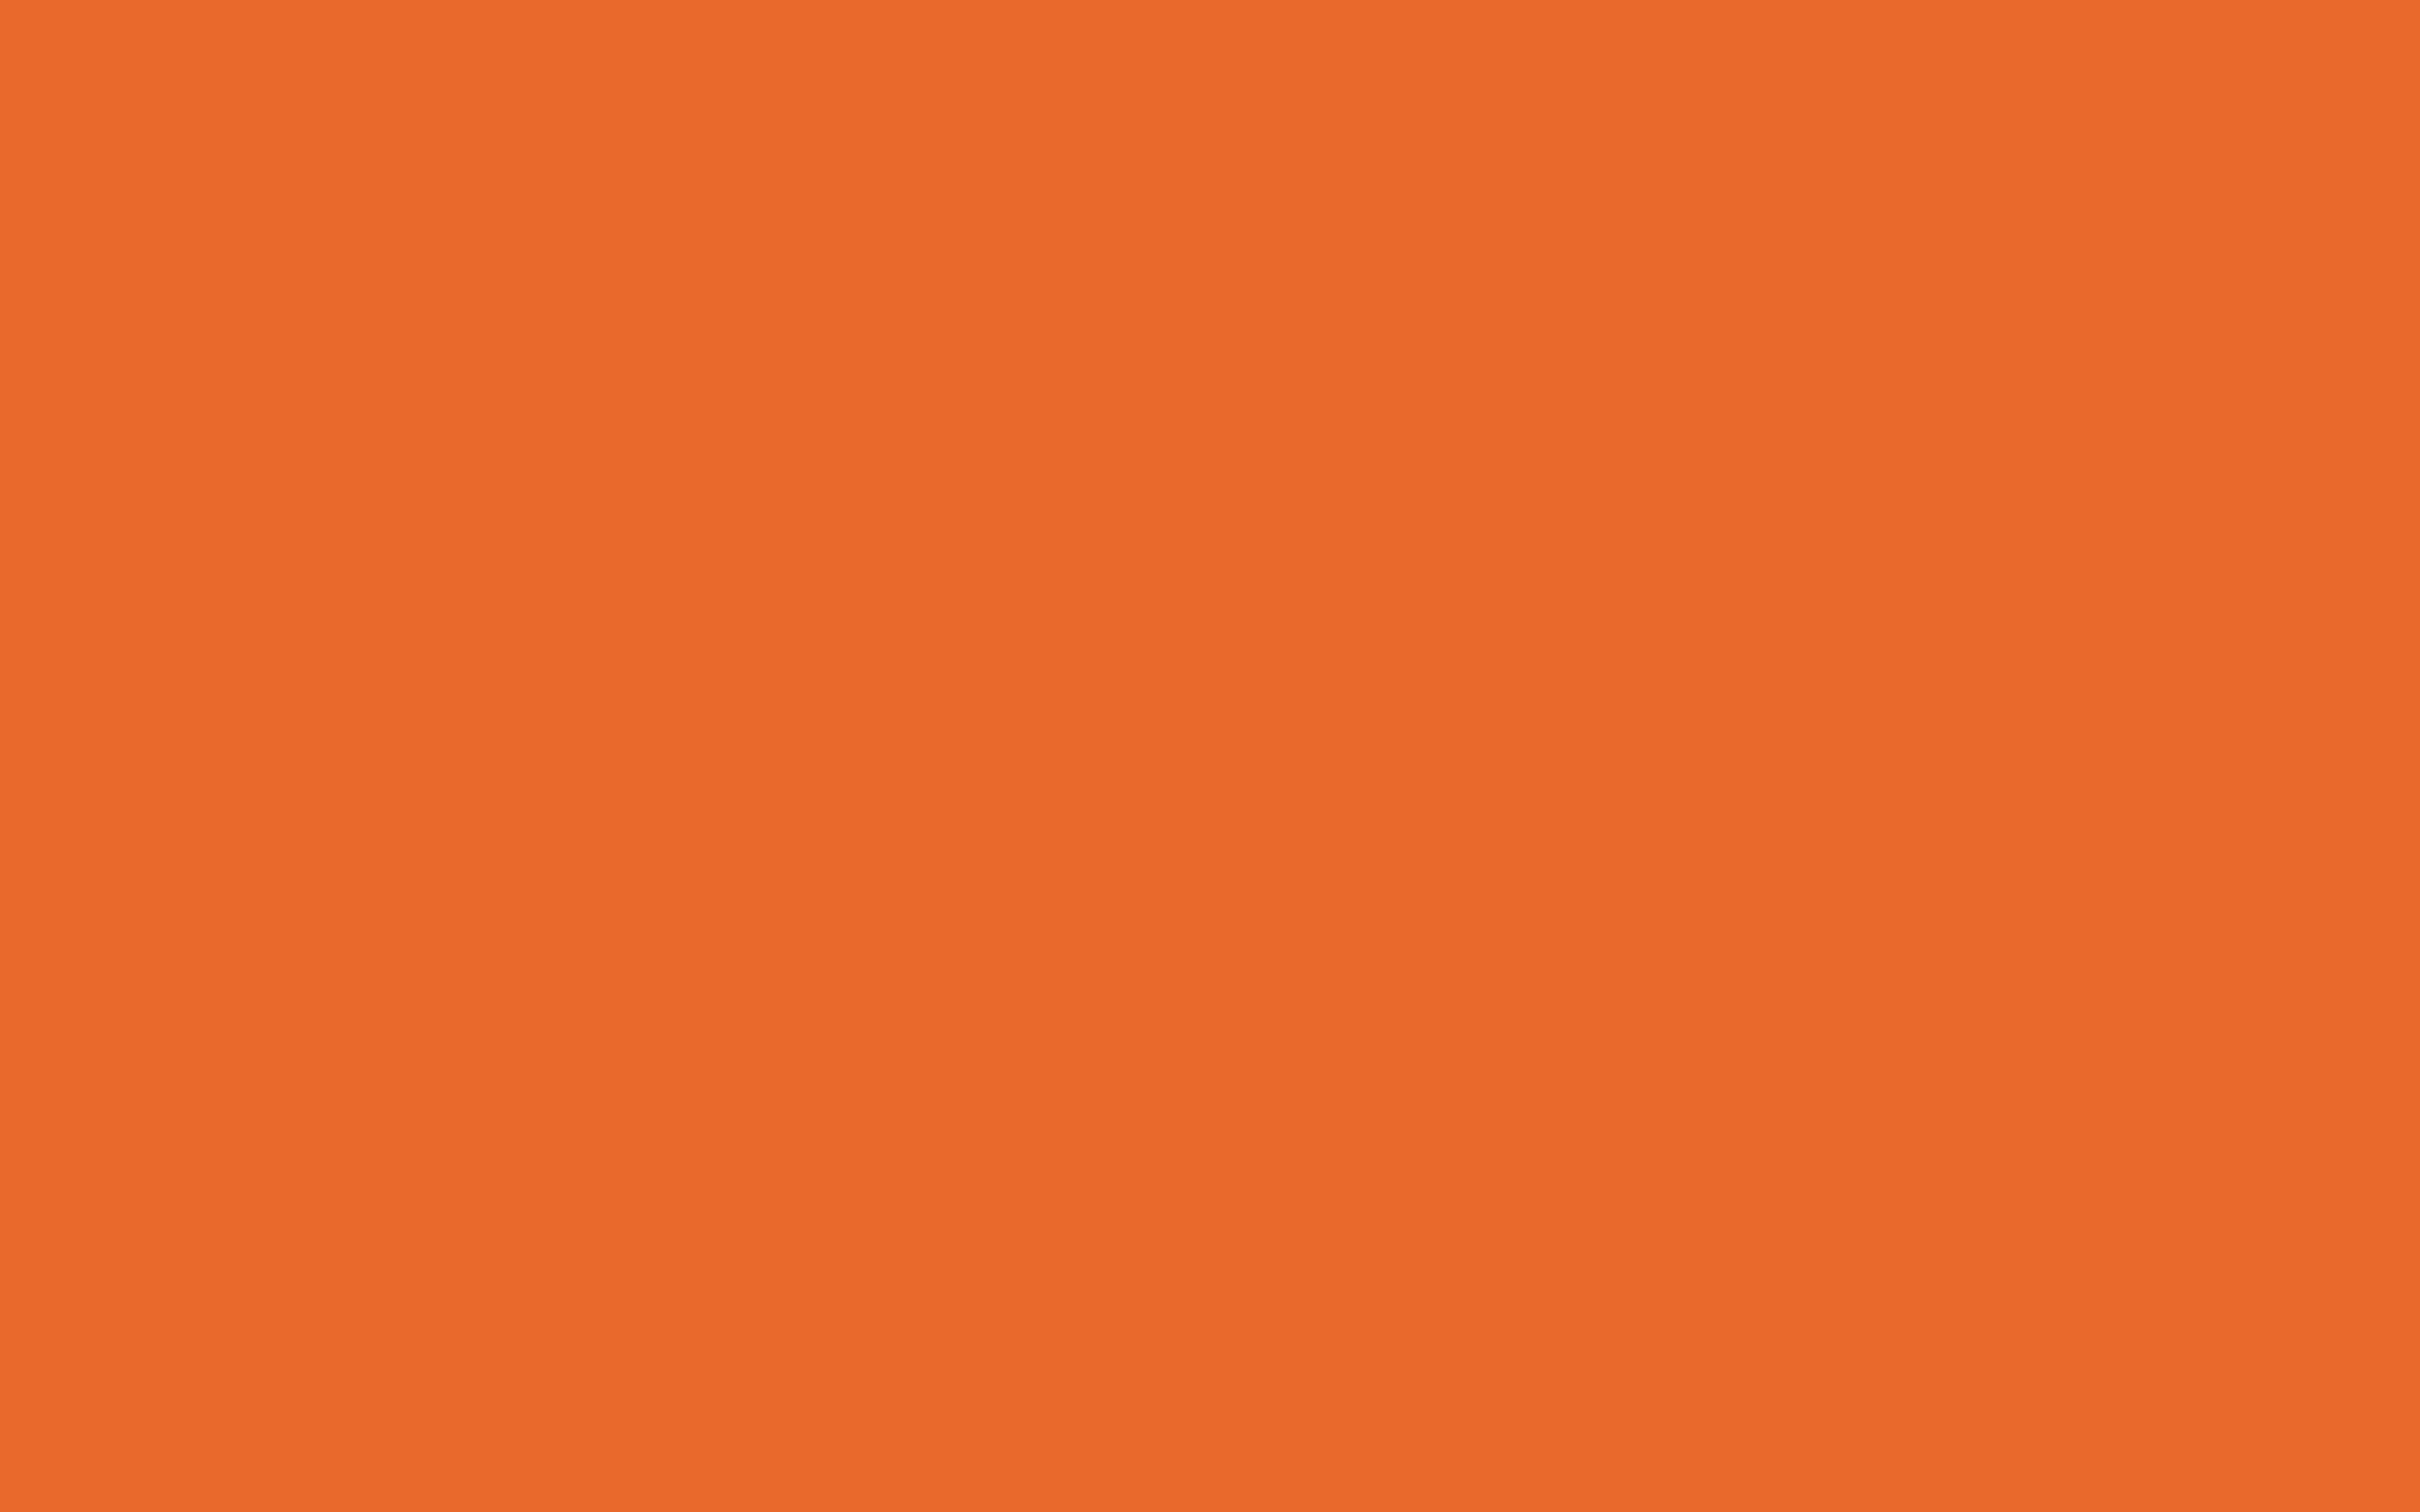 2560x1600 Deep Carrot Orange Solid Color Background